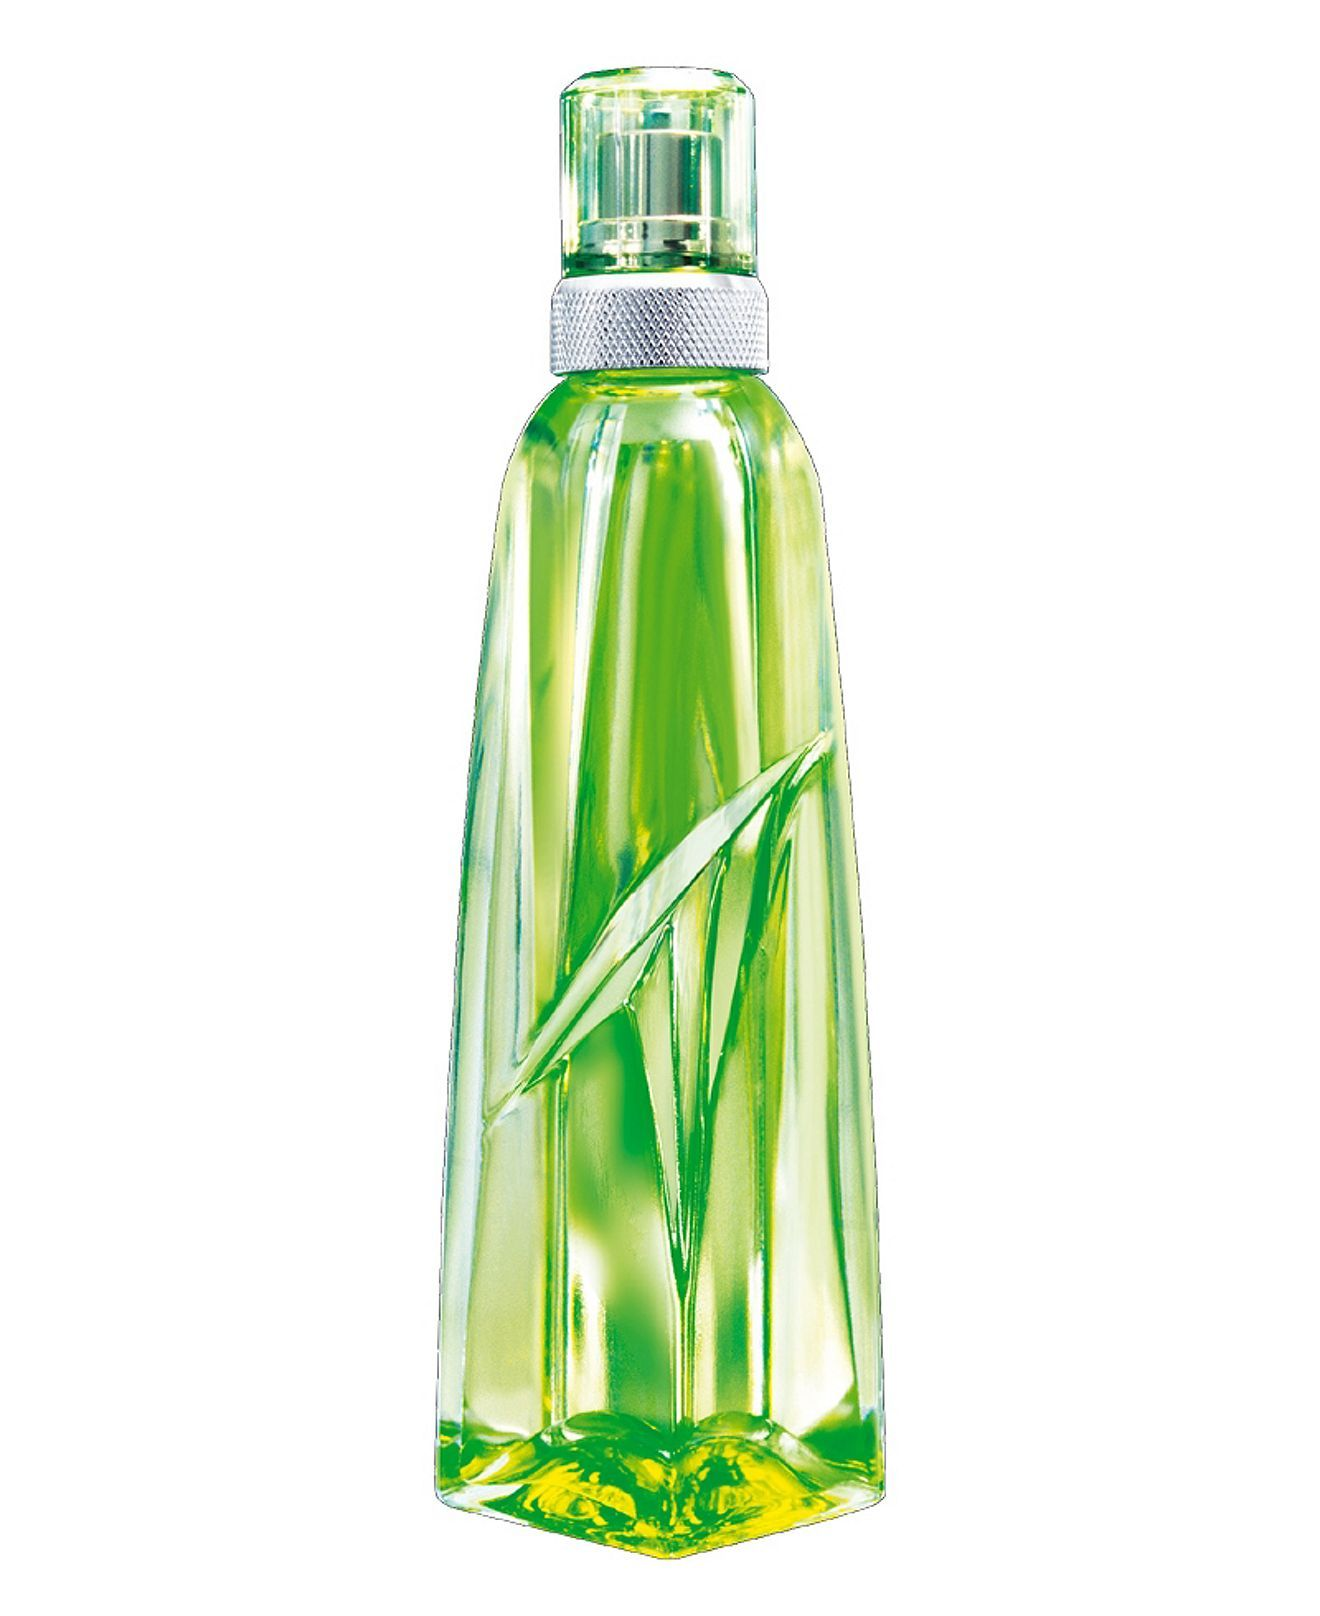 Thierry Mugler Cologne Fragrance Collection Fresh